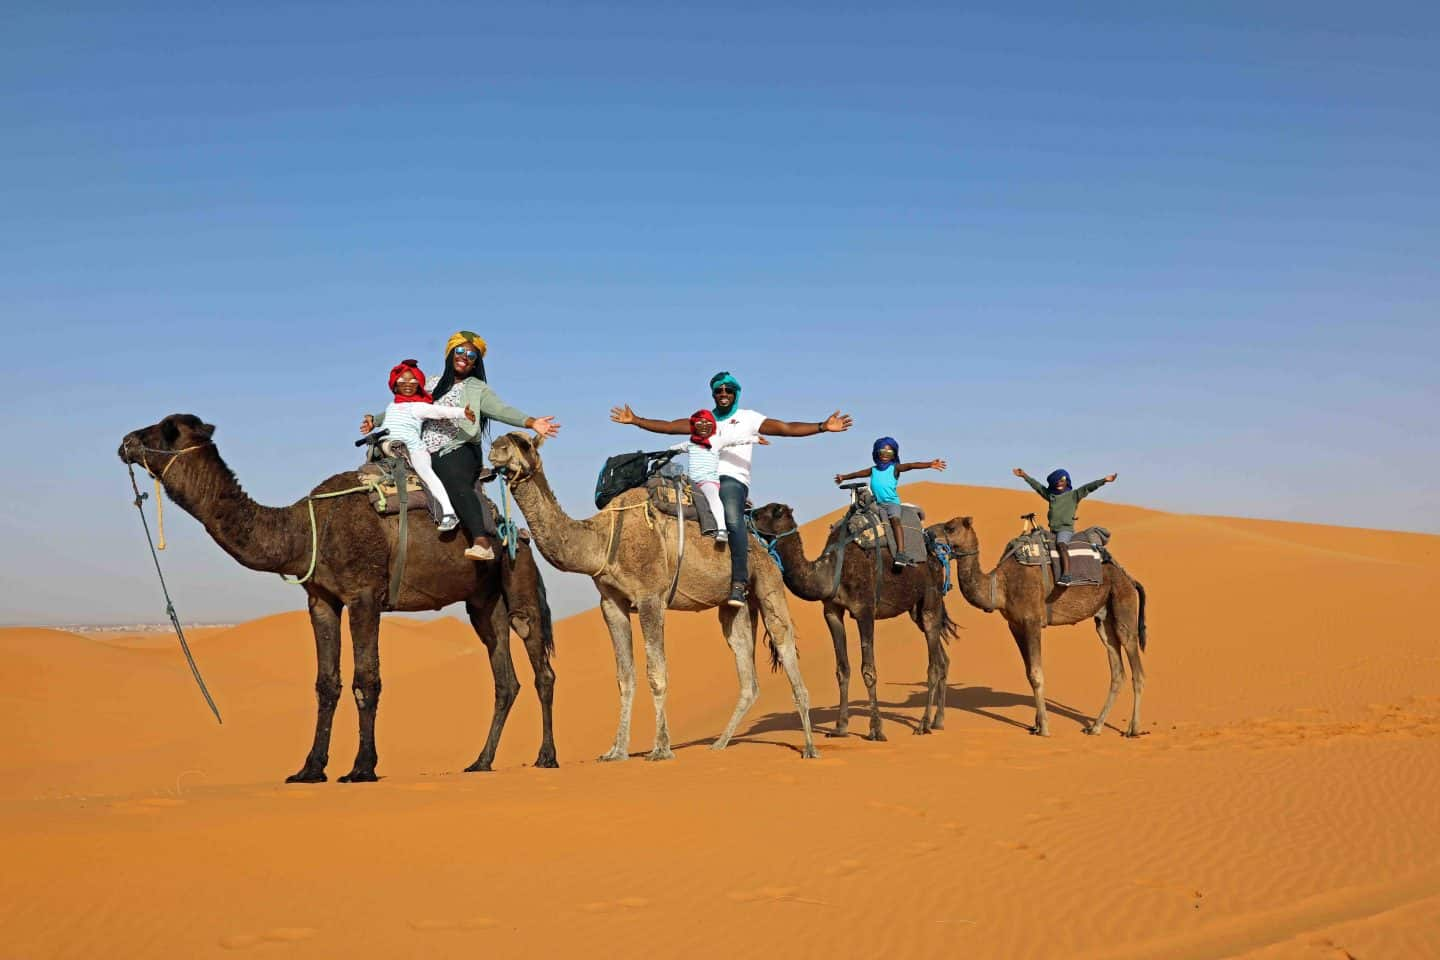 Morocco: What You Need To Know About Camping In The Sahara Desert With Kids